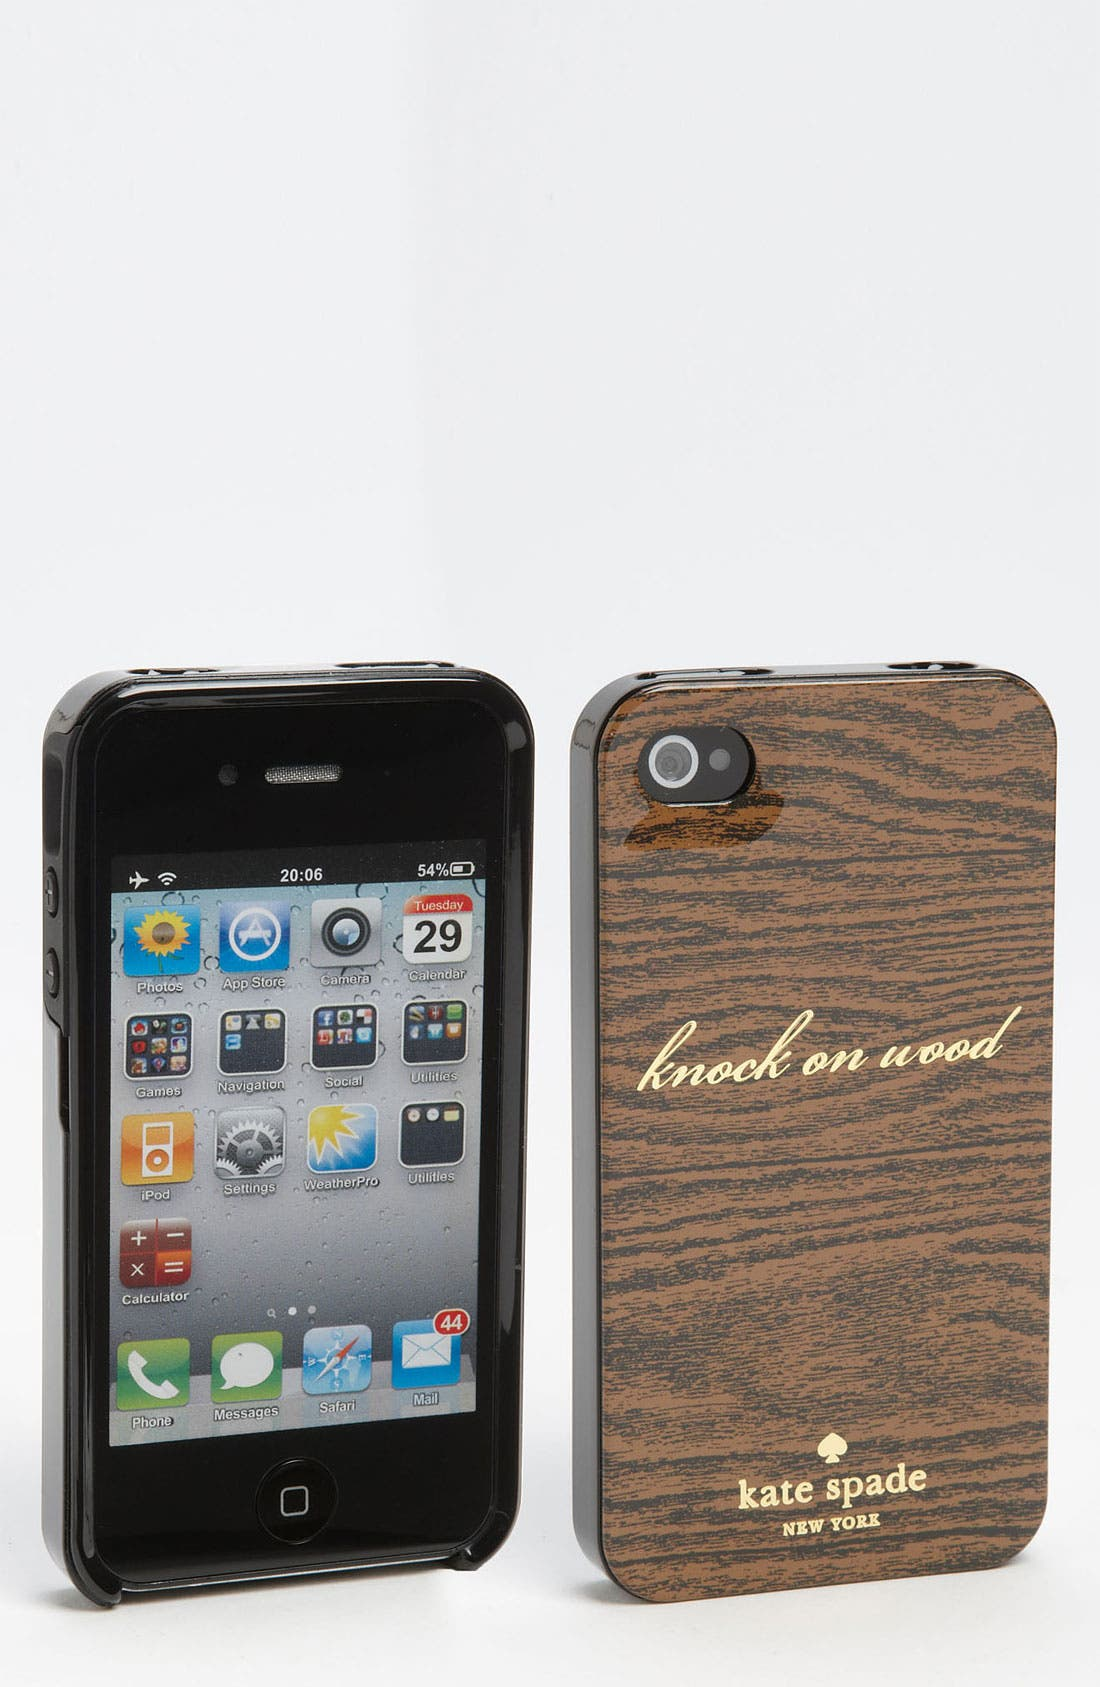 Main Image - kate spade new york 'knock on wood' iPhone 4 & 4S case